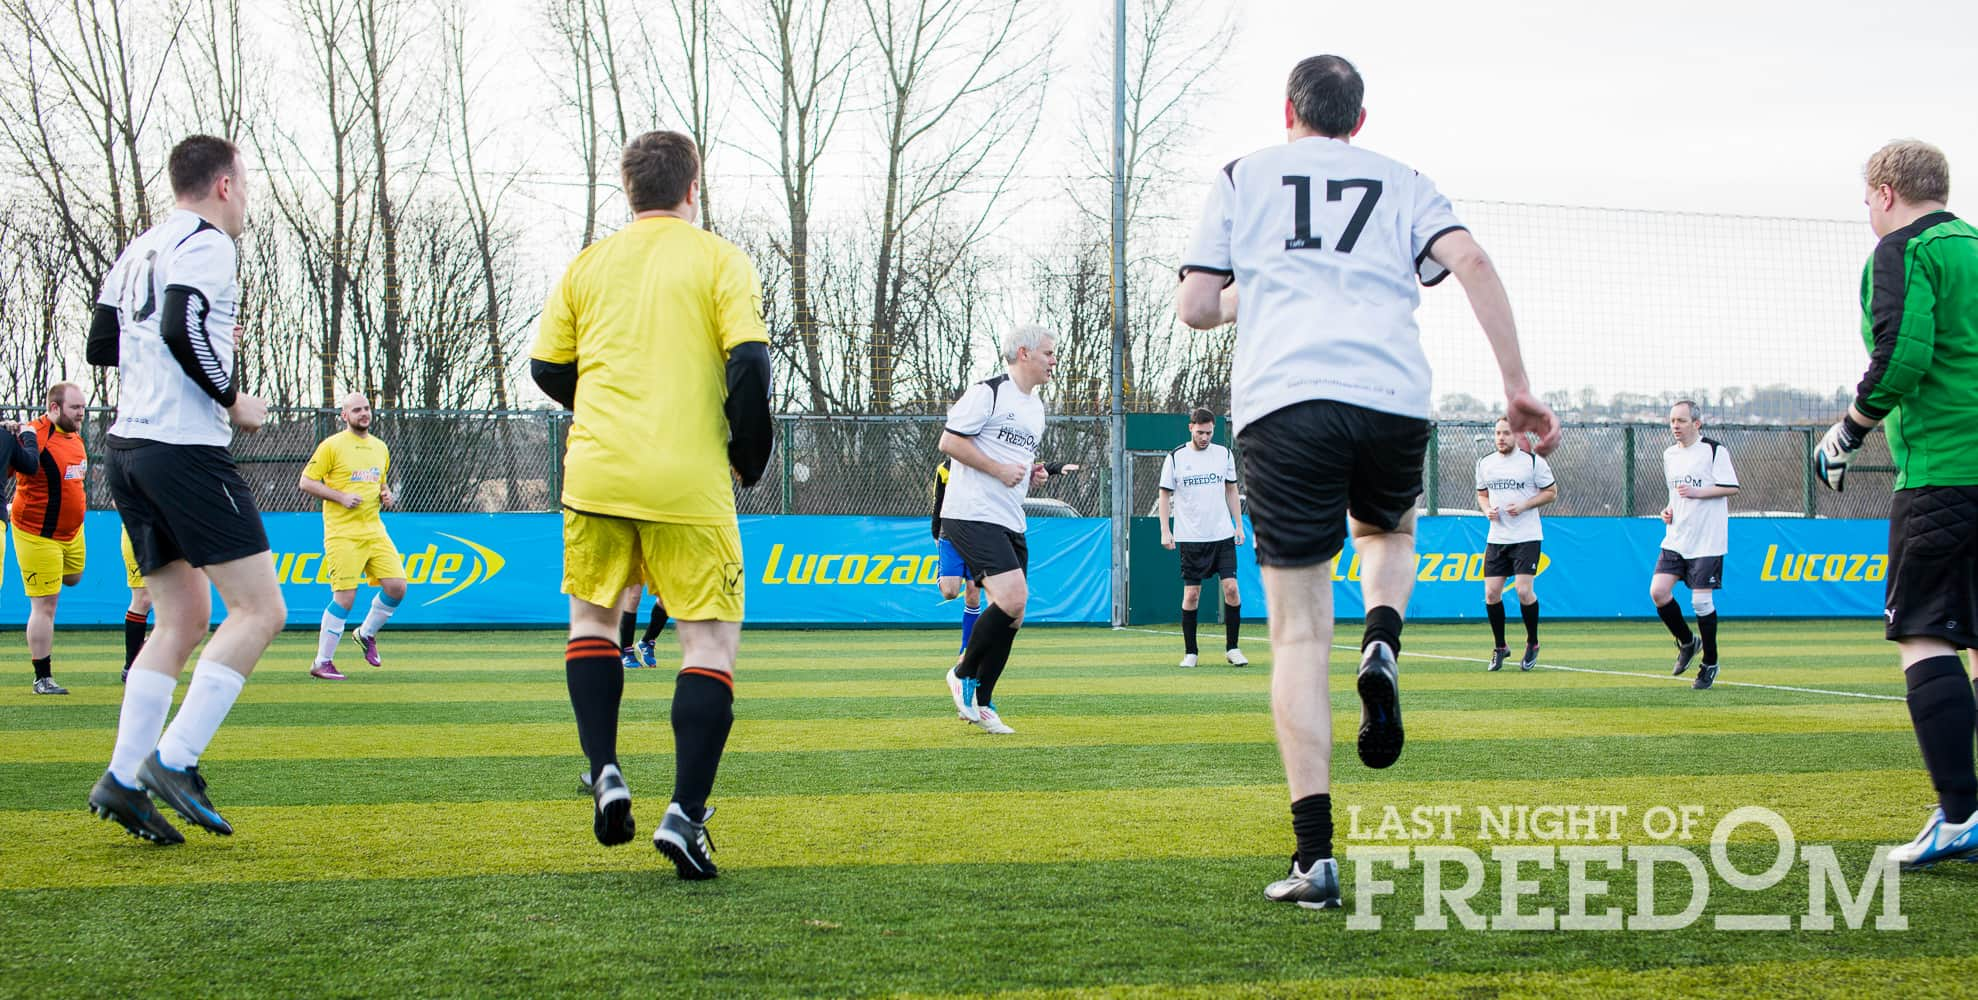 Rob Lee leading players in a warm up on the pitch